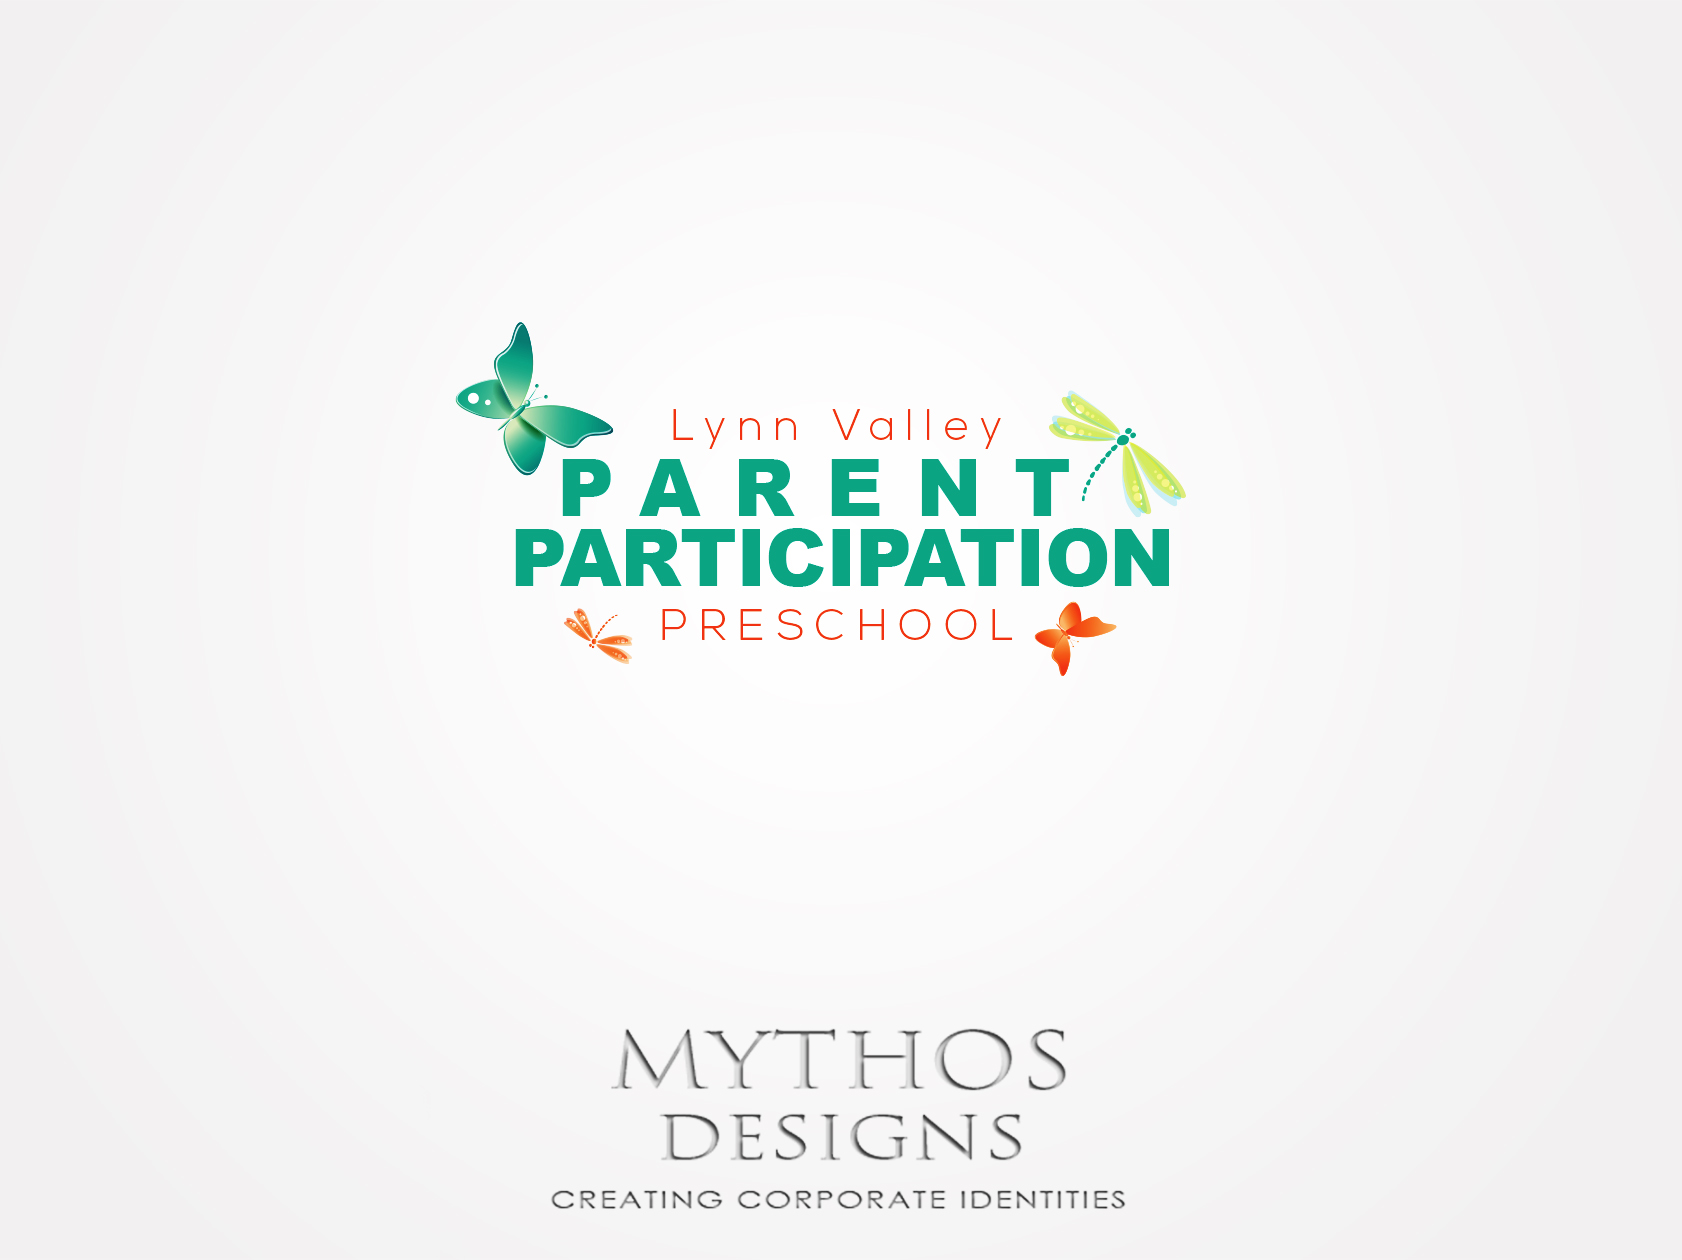 Logo Design by Mythos Designs - Entry No. 38 in the Logo Design Contest New Logo Design for Lynn Valley Parent Participation Preschool.